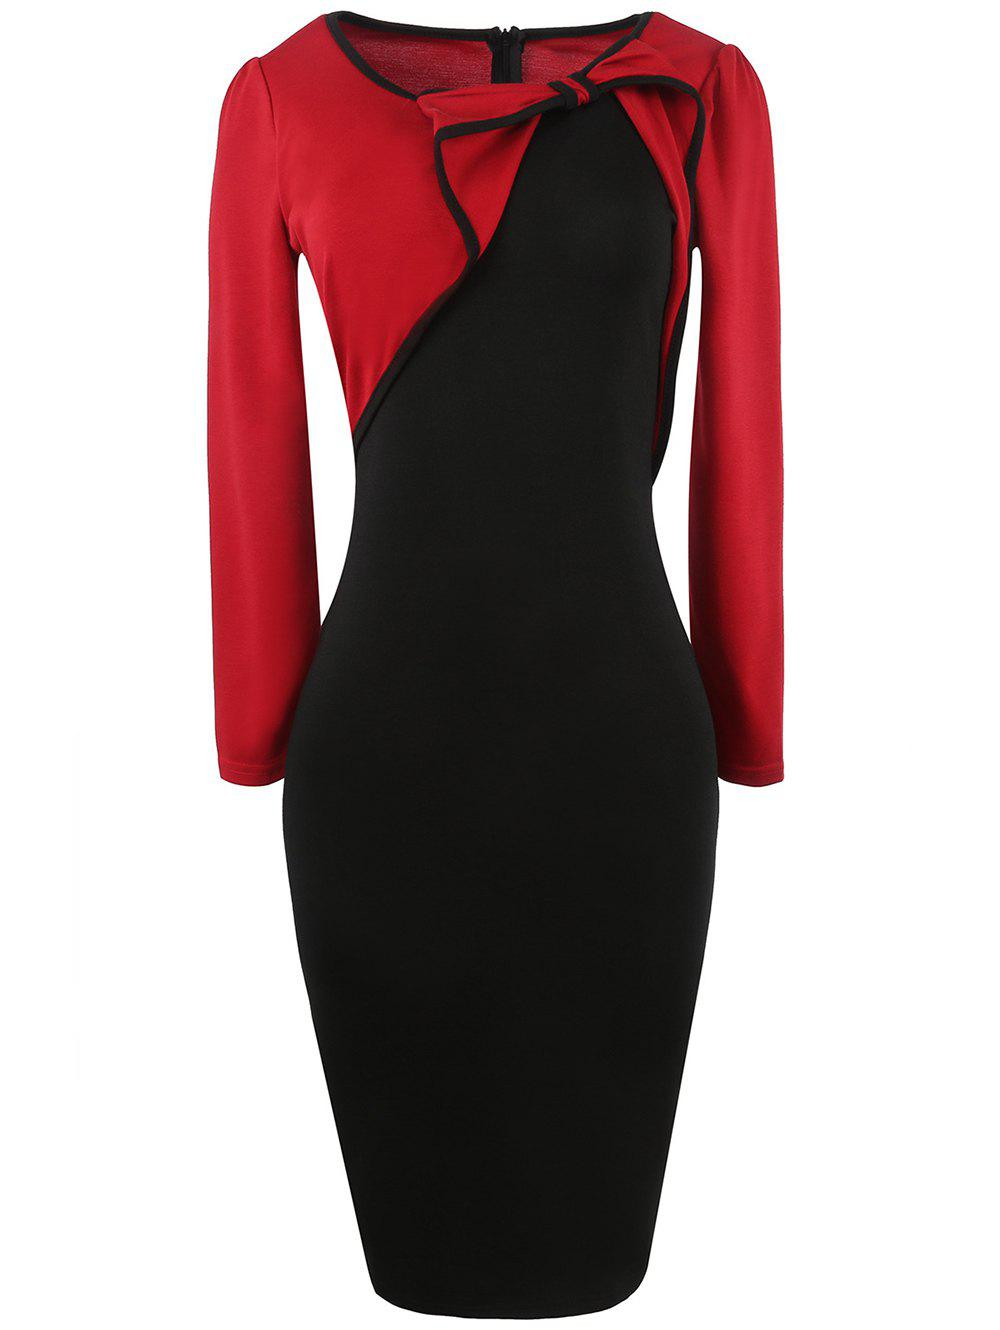 Long Sleeve Bowknot Color Block Pencil Dress - RED S